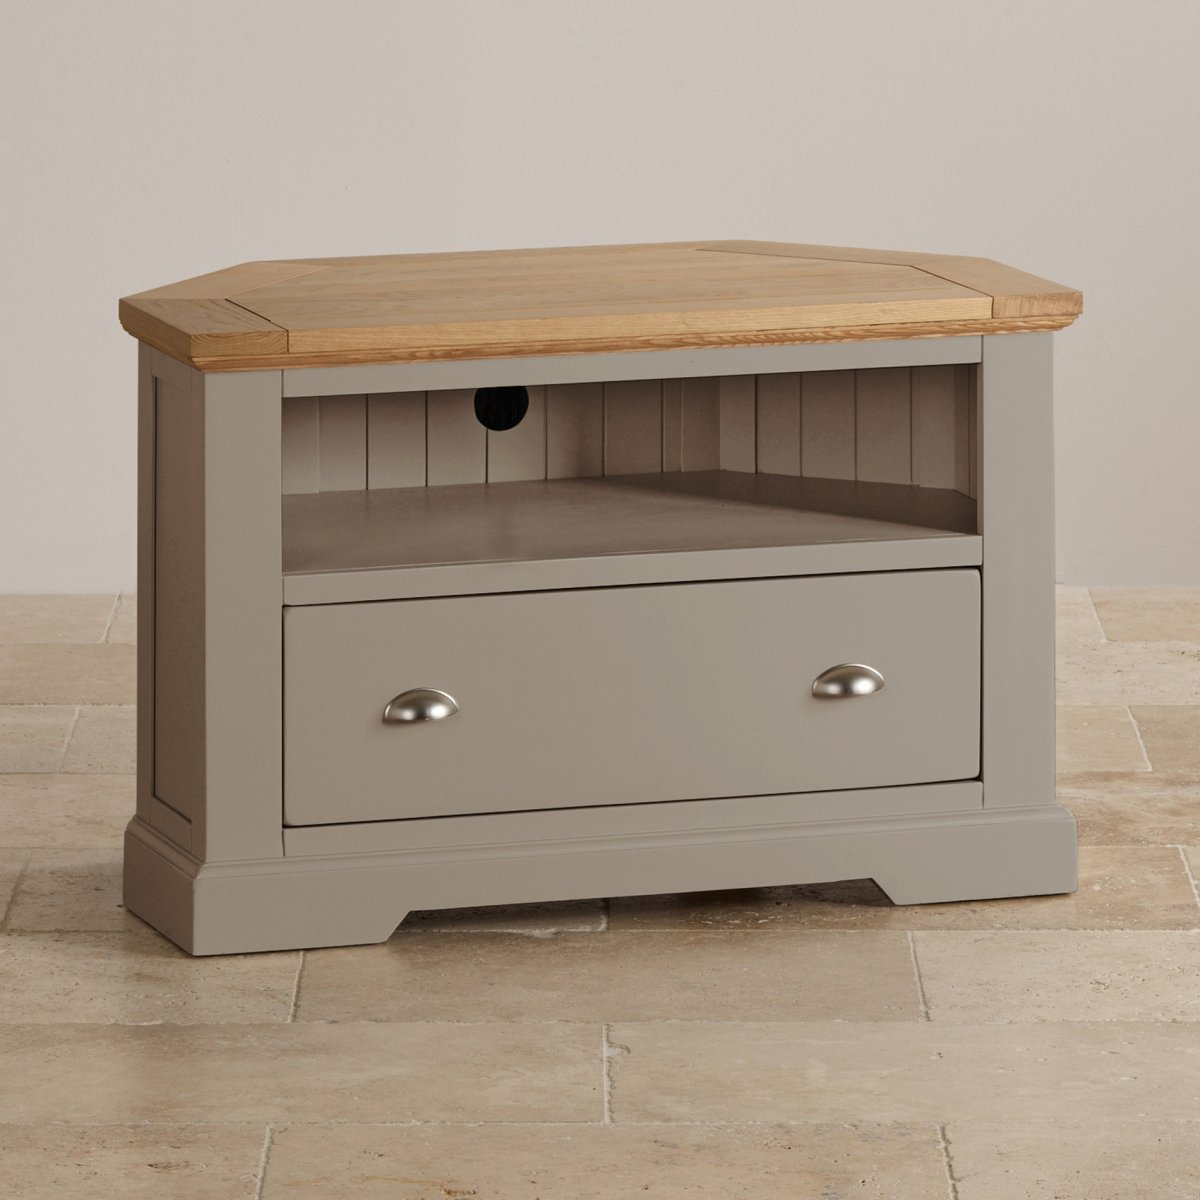 st ives corner tv unit in grey painted acacia with oak top. Black Bedroom Furniture Sets. Home Design Ideas